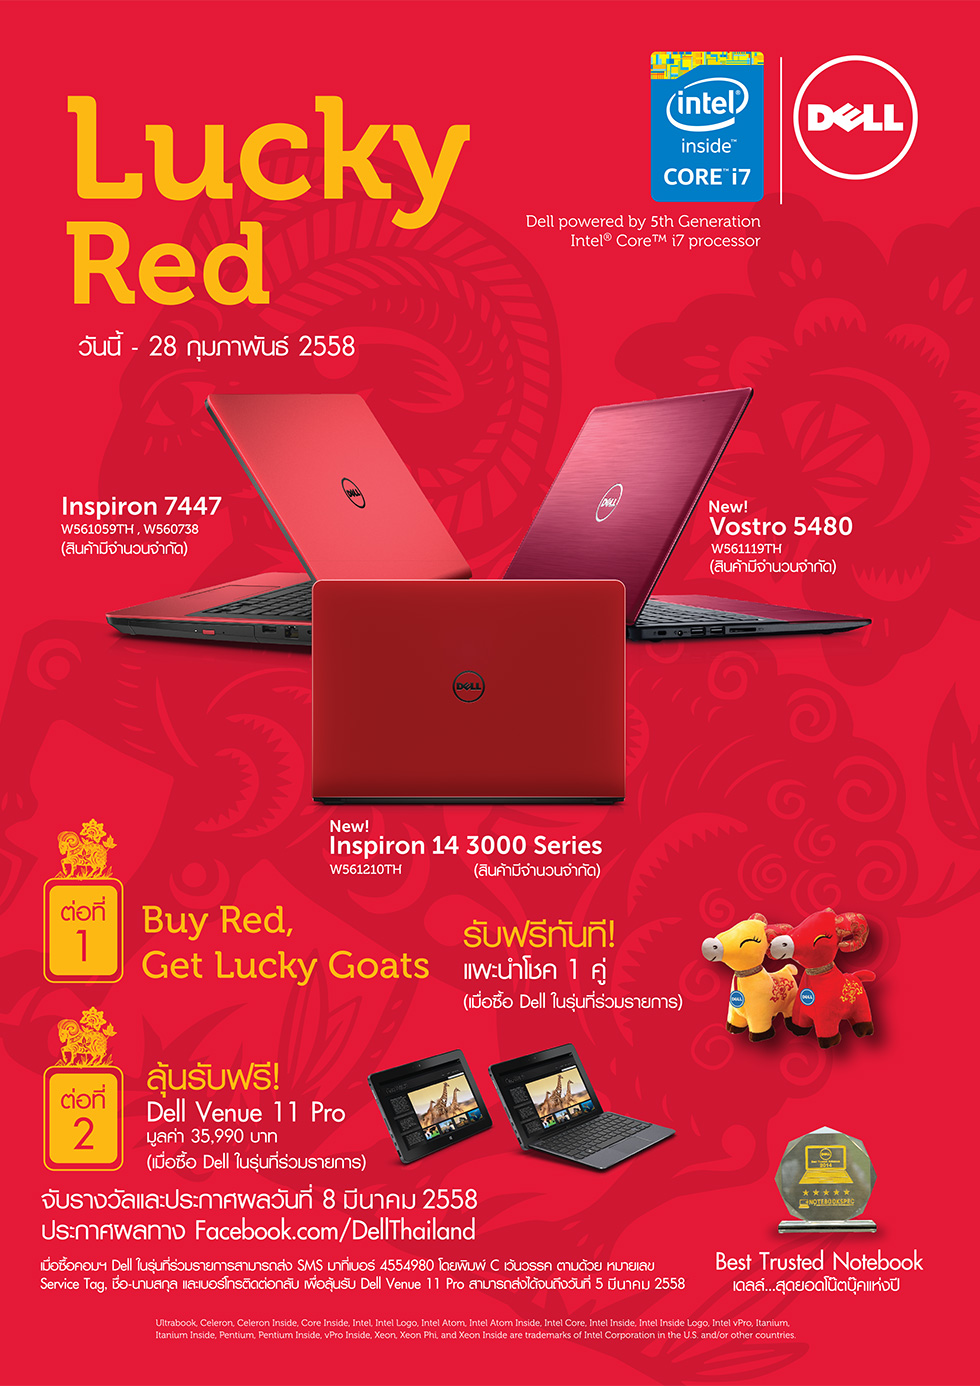 Dell Lucky Red Promo